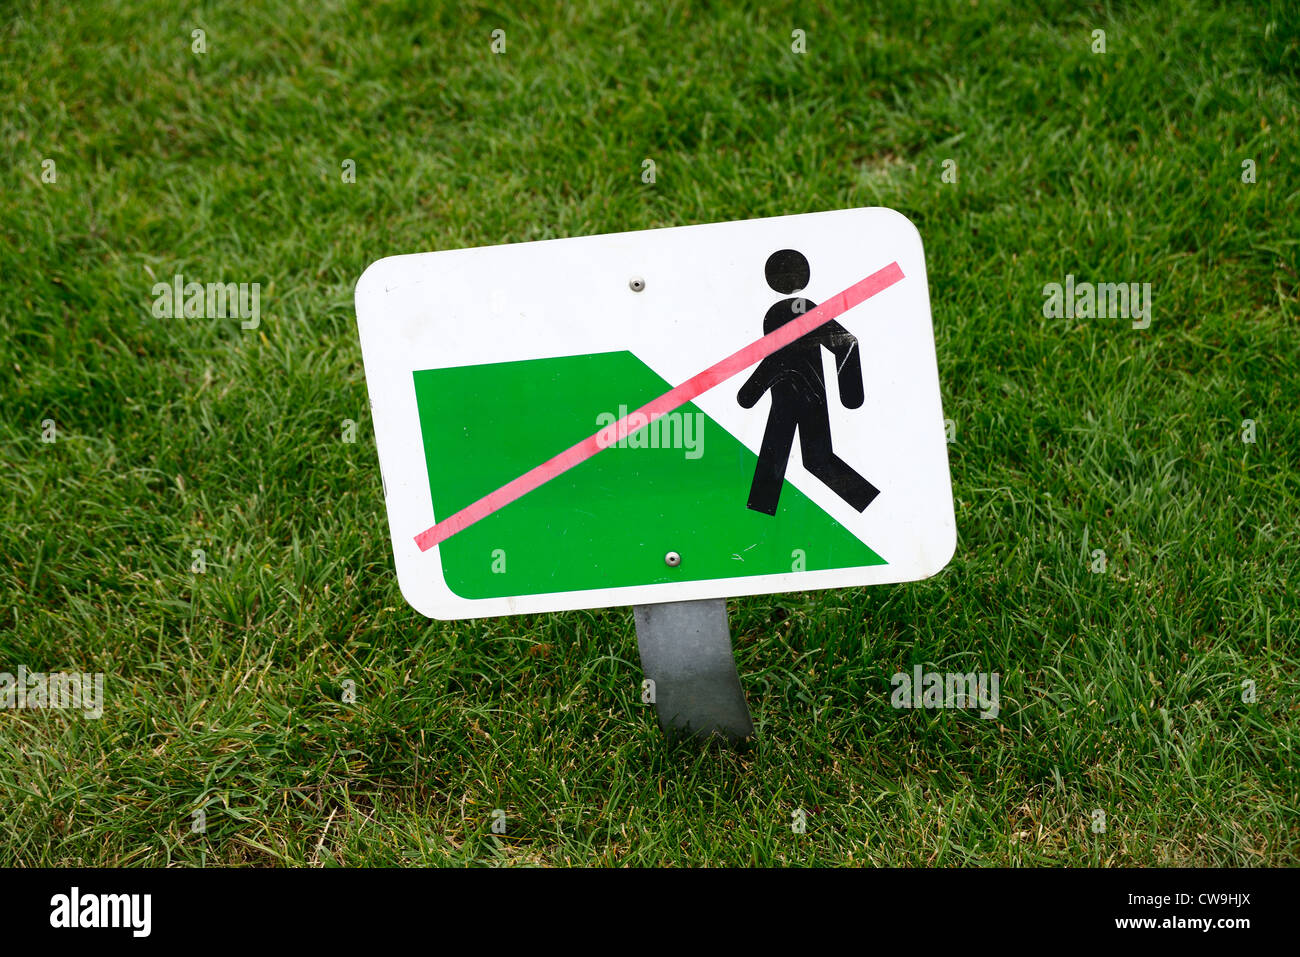 Stay off the grass! - Stock Image